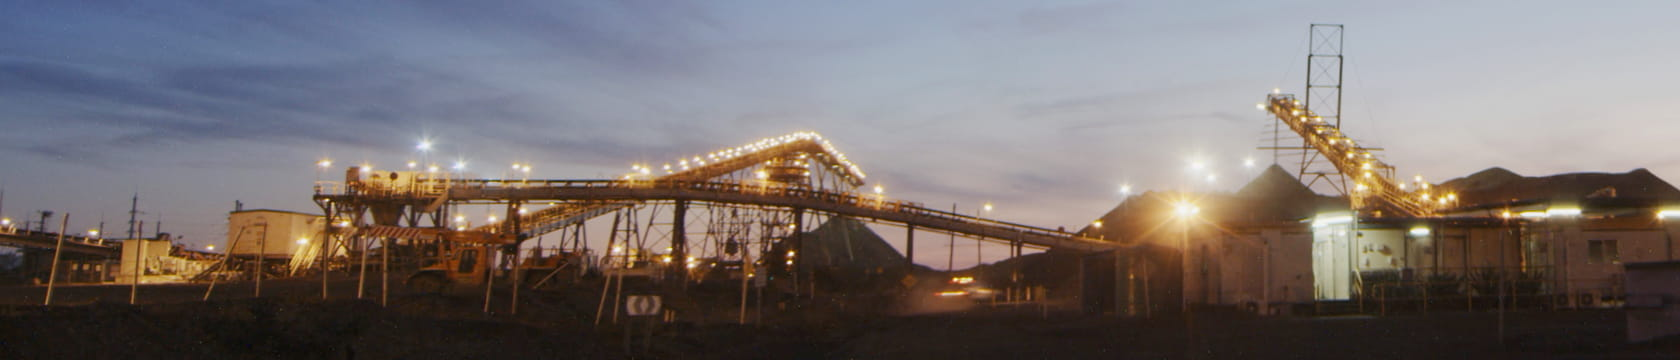 Case studies - Fixed plant innovation - Ore handling and processing plant at dusk